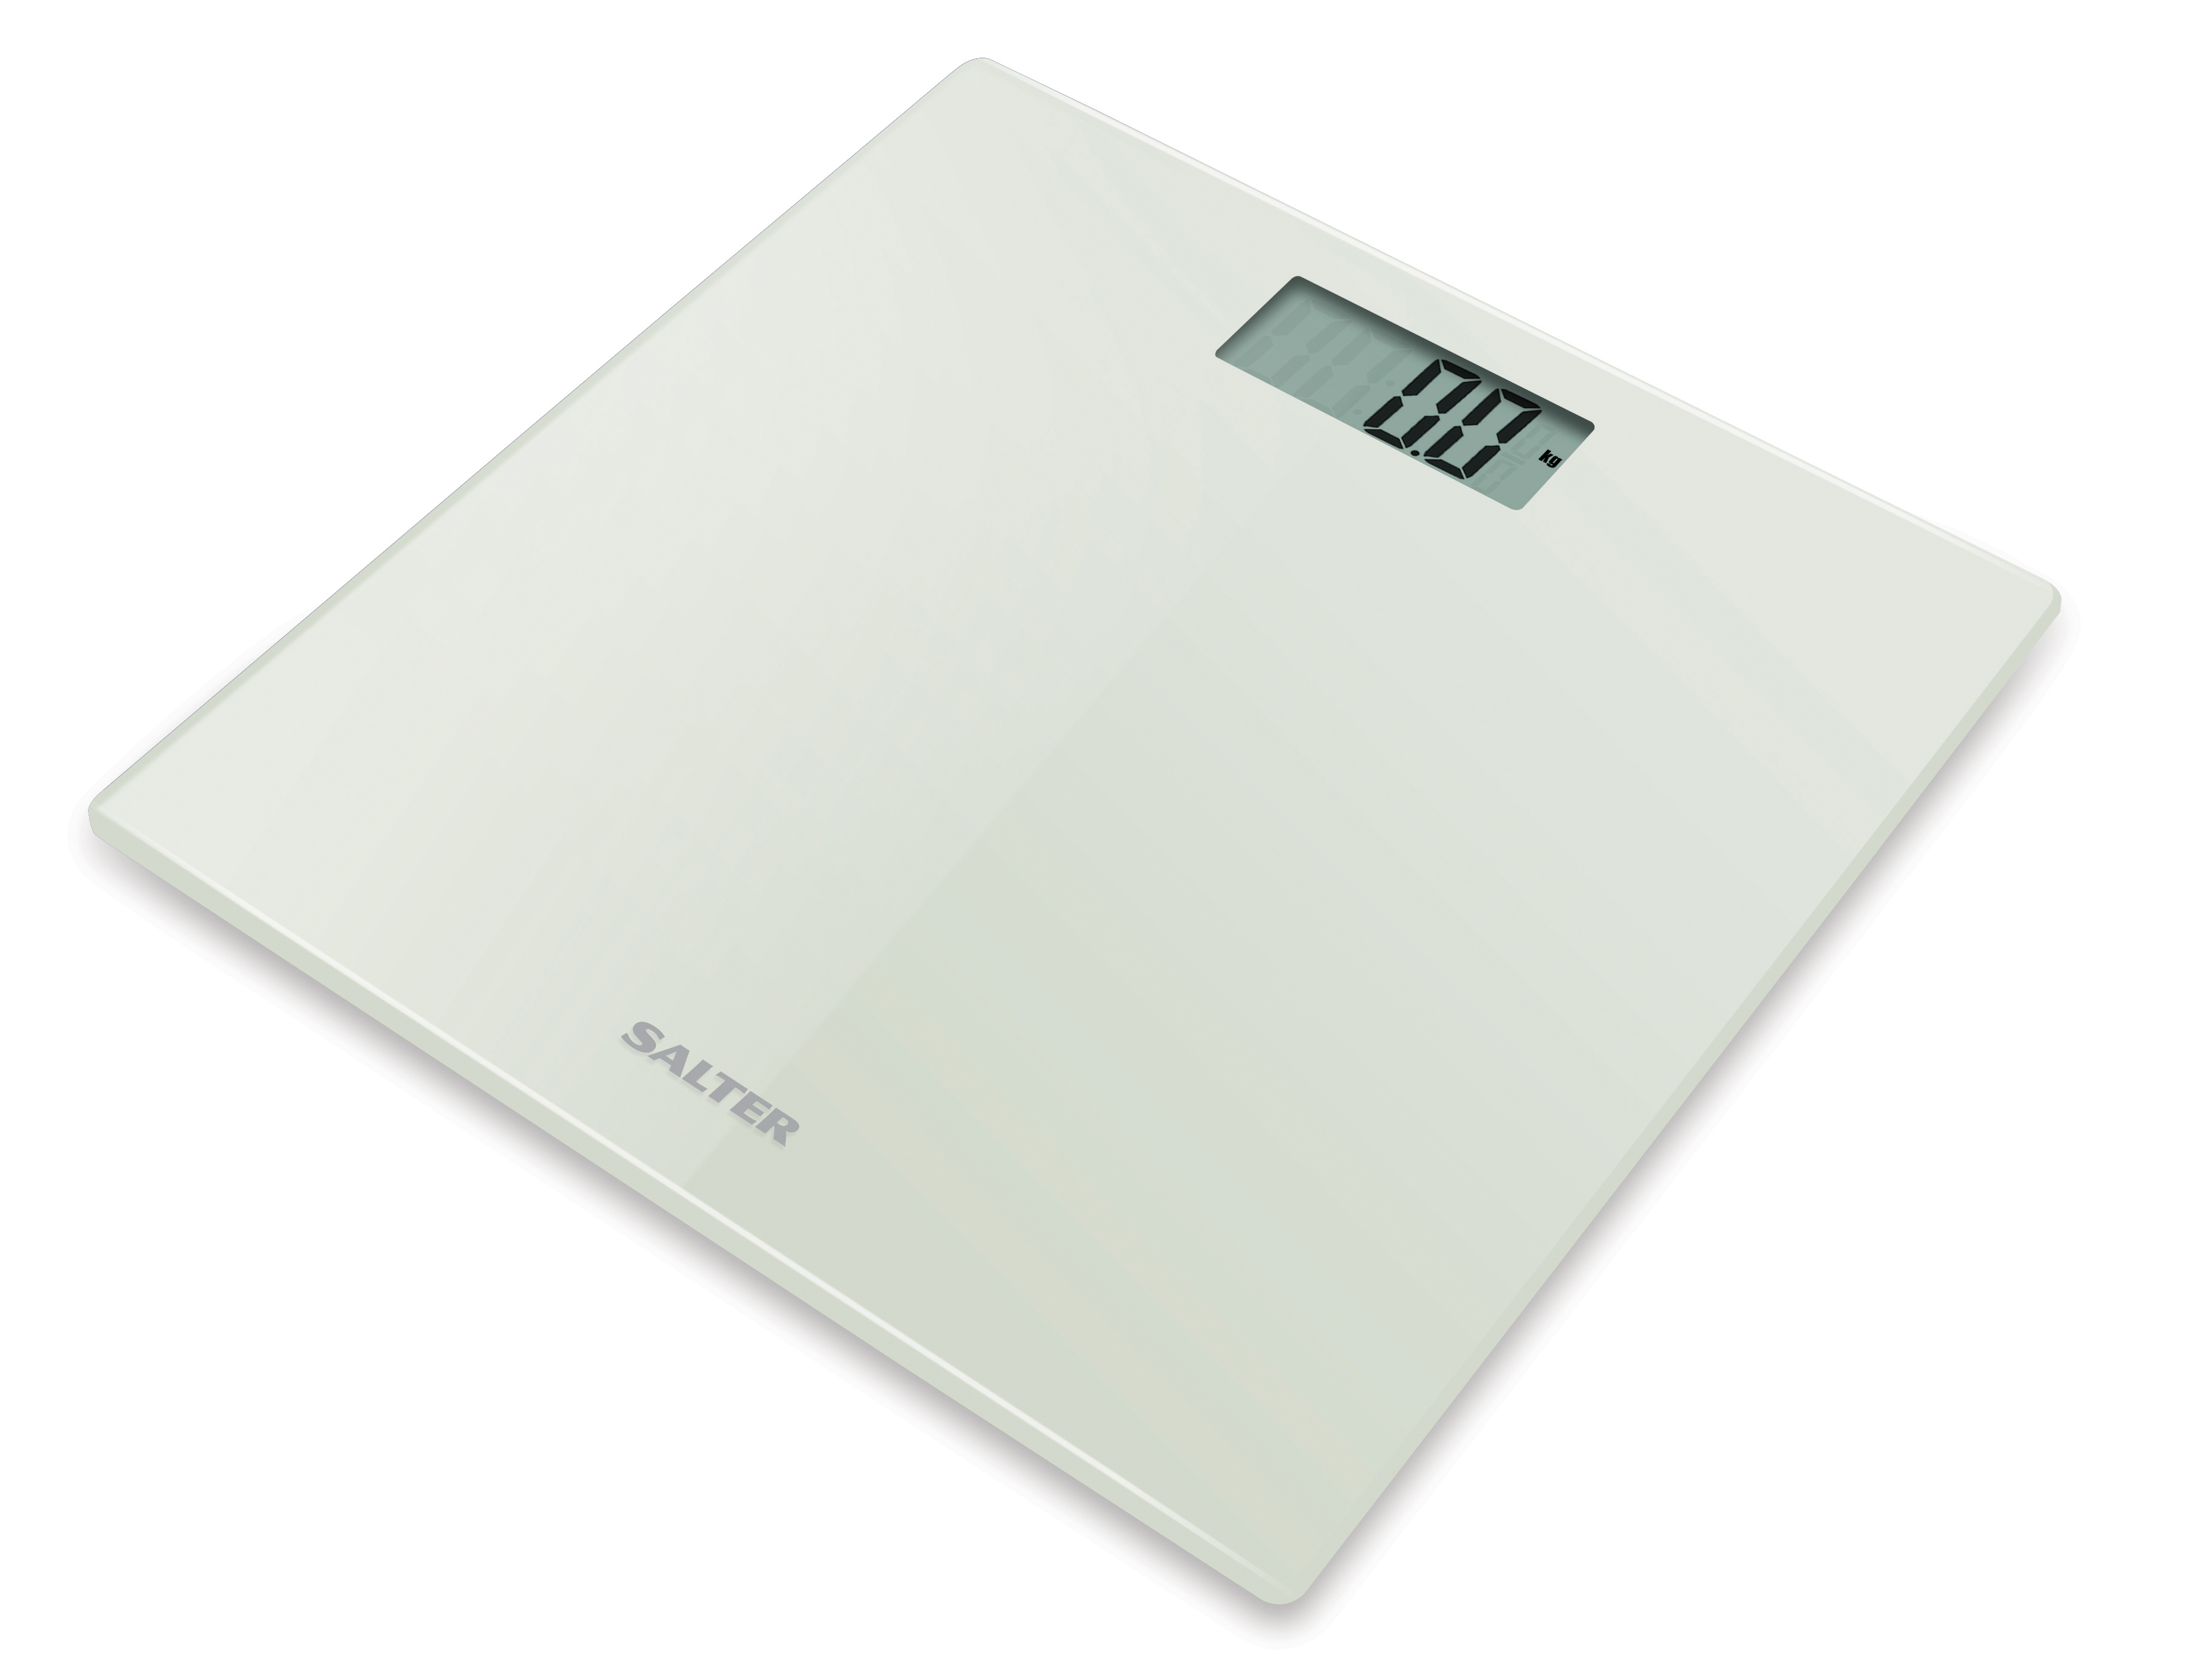 Salter Ultra Slim Glass Electronic Personal Scale 9069wh3r